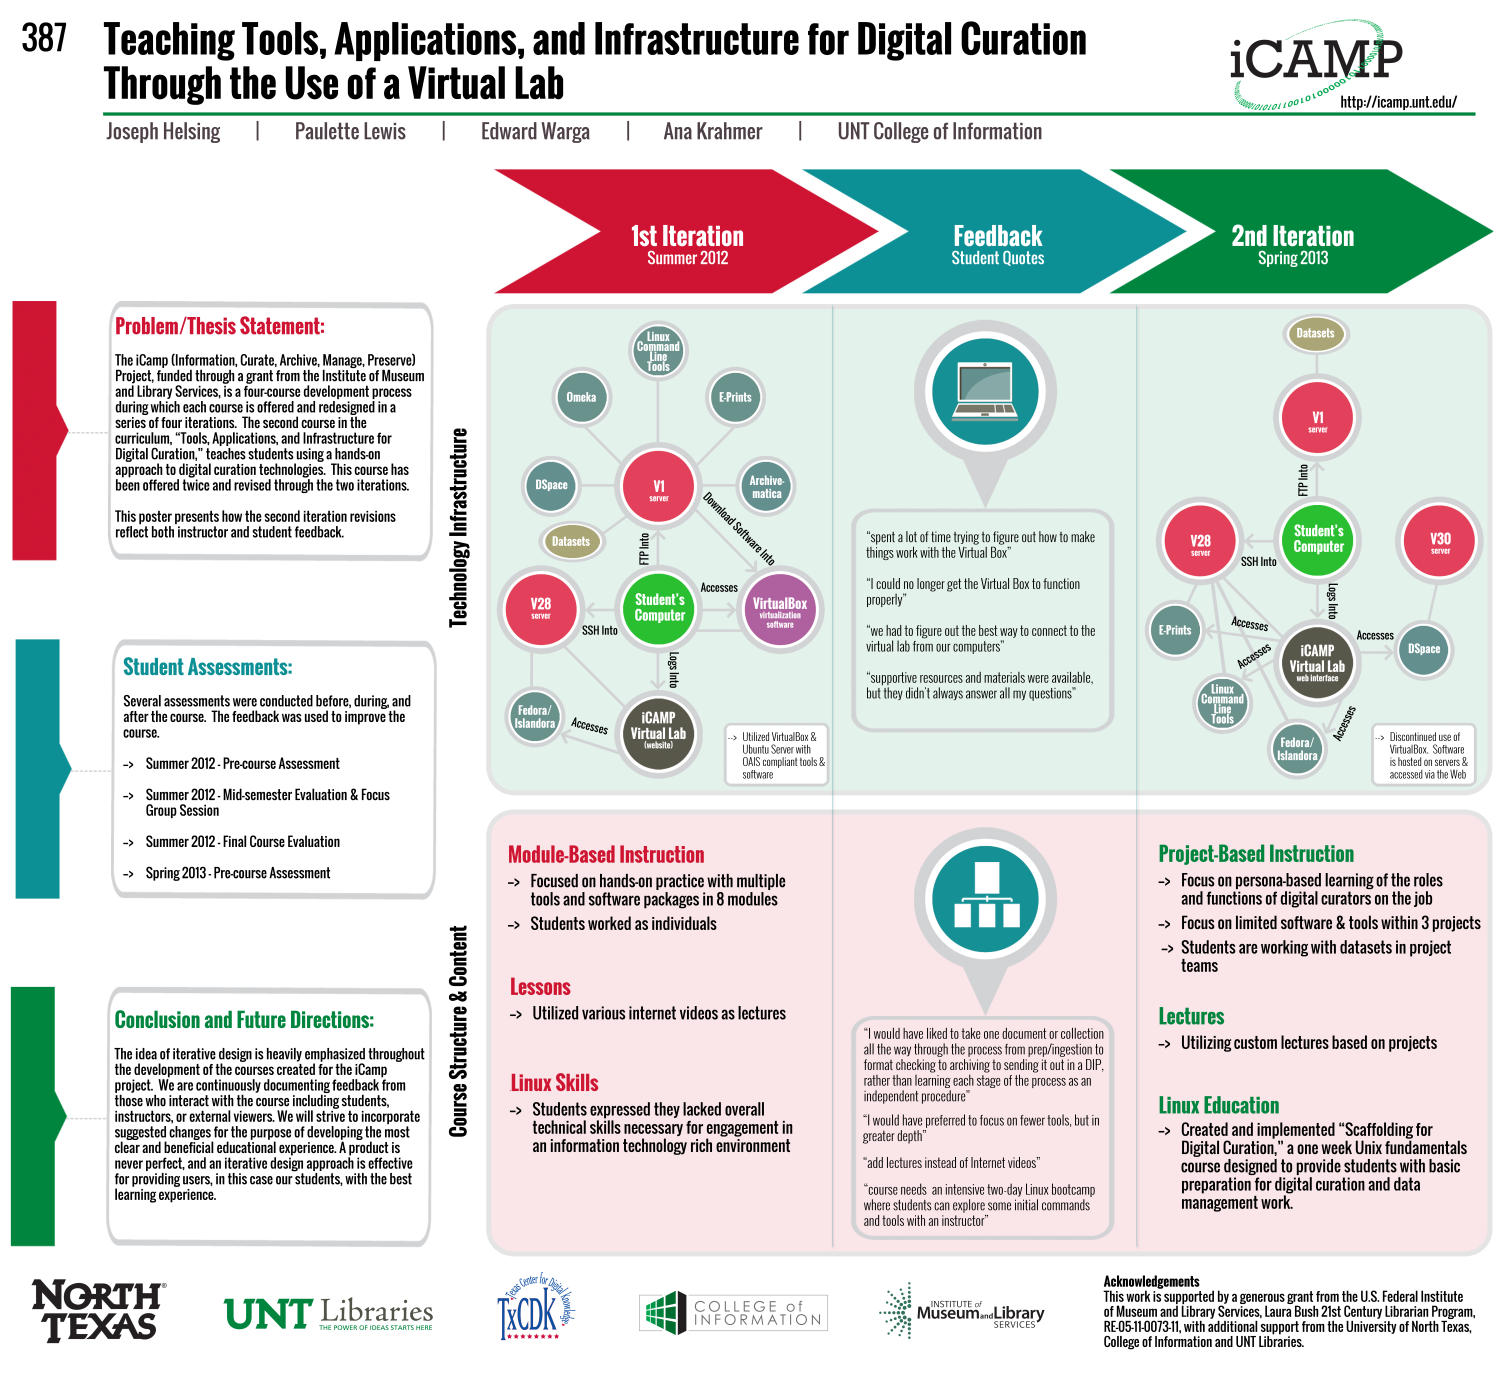 Teaching Tools, Applications, and Infrastructure for Digital Curation Through the Use of a Virtual Lab [Poster]                                                                                                      [Sequence #]: 1 of 1